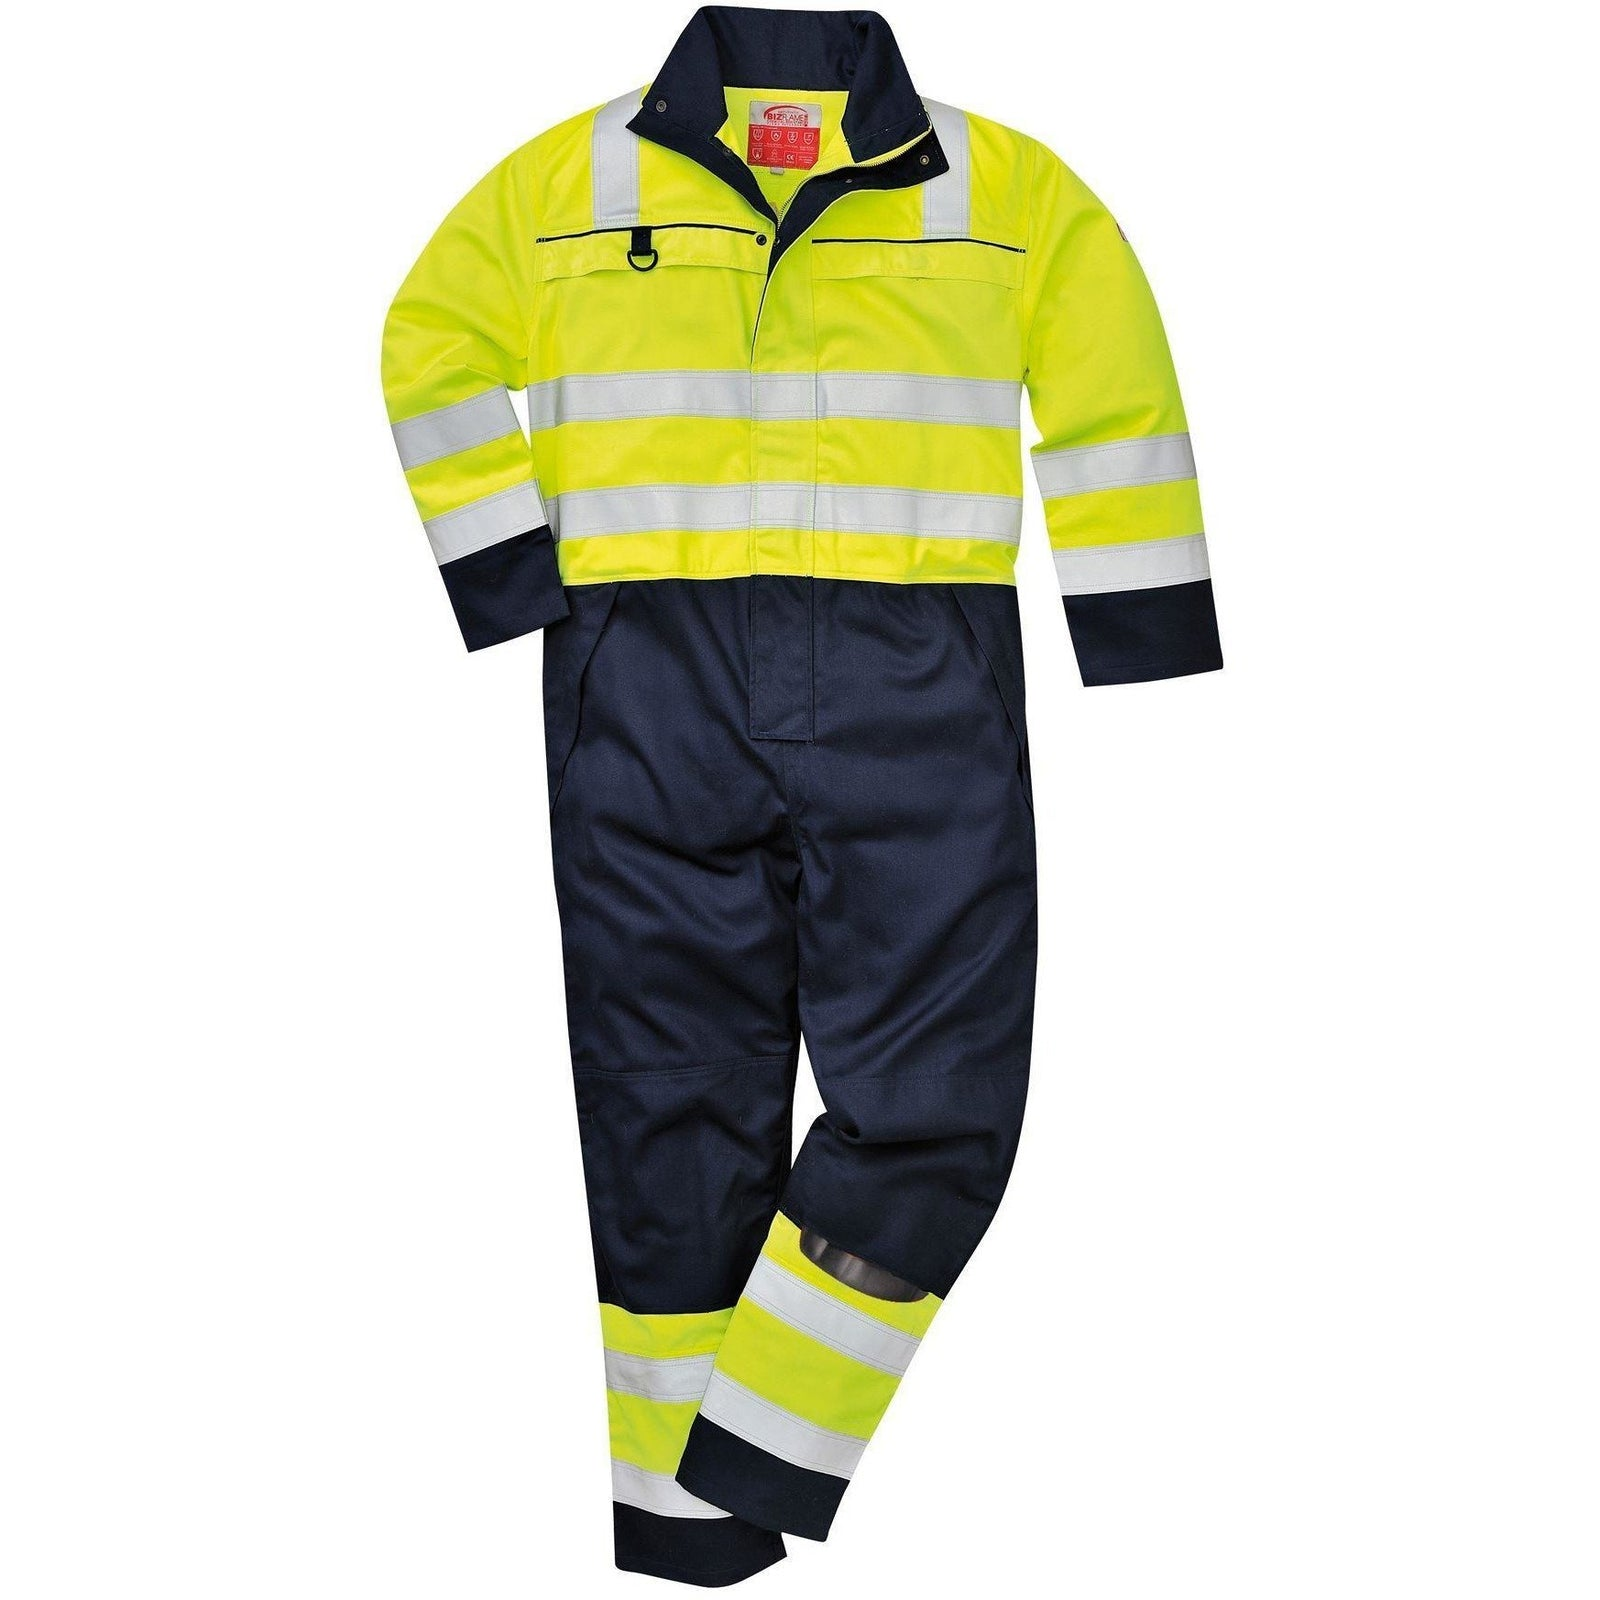 Portwest Hi-Vis Multi-Norm Coverall FR60 - reid outdoors